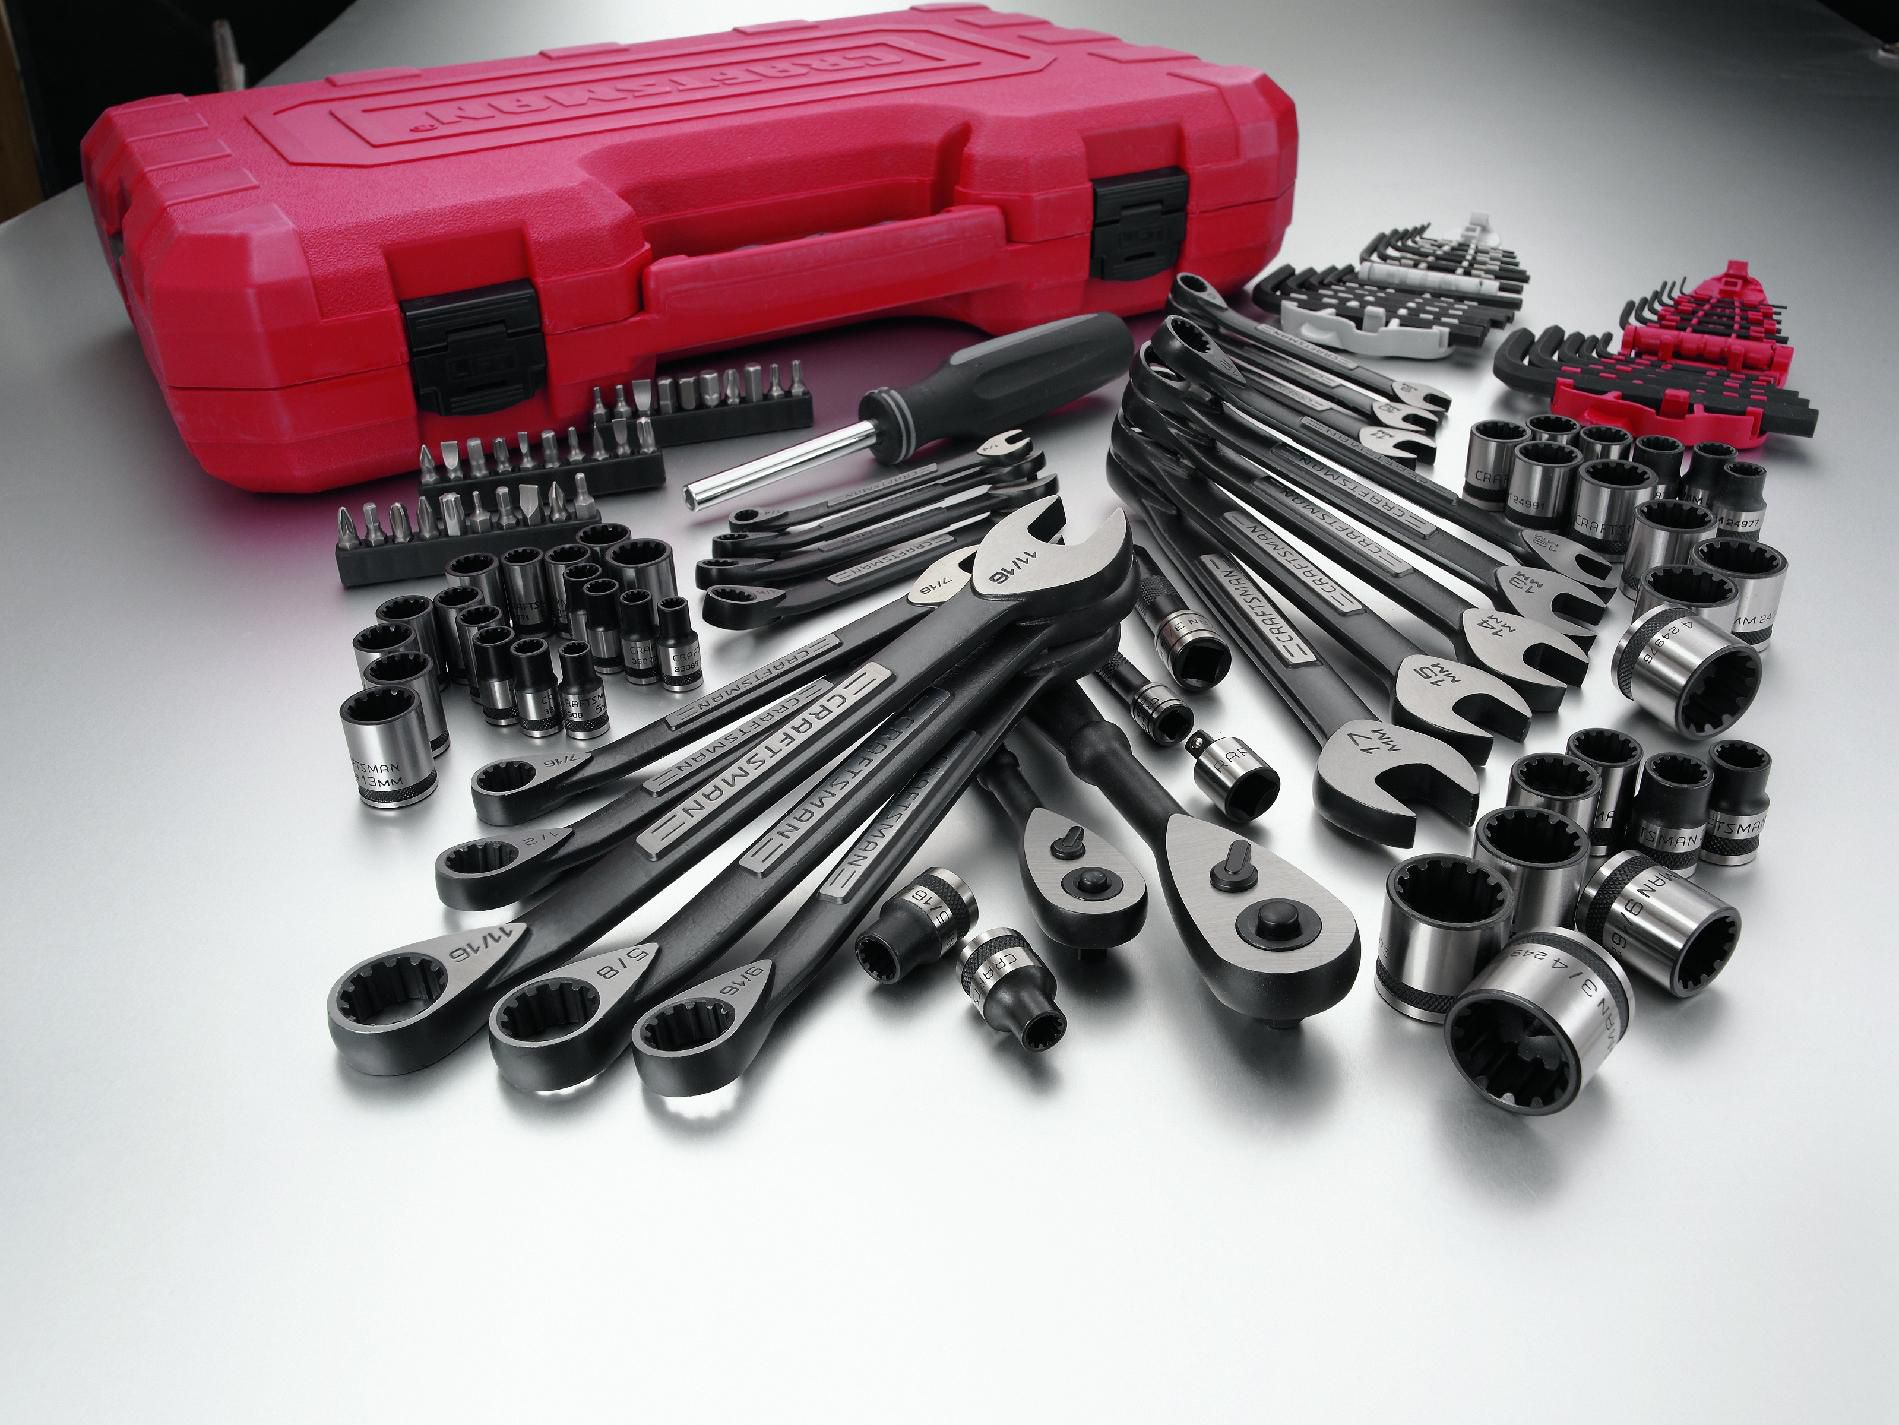 Craftsman  115 pc. Universal Mechanics